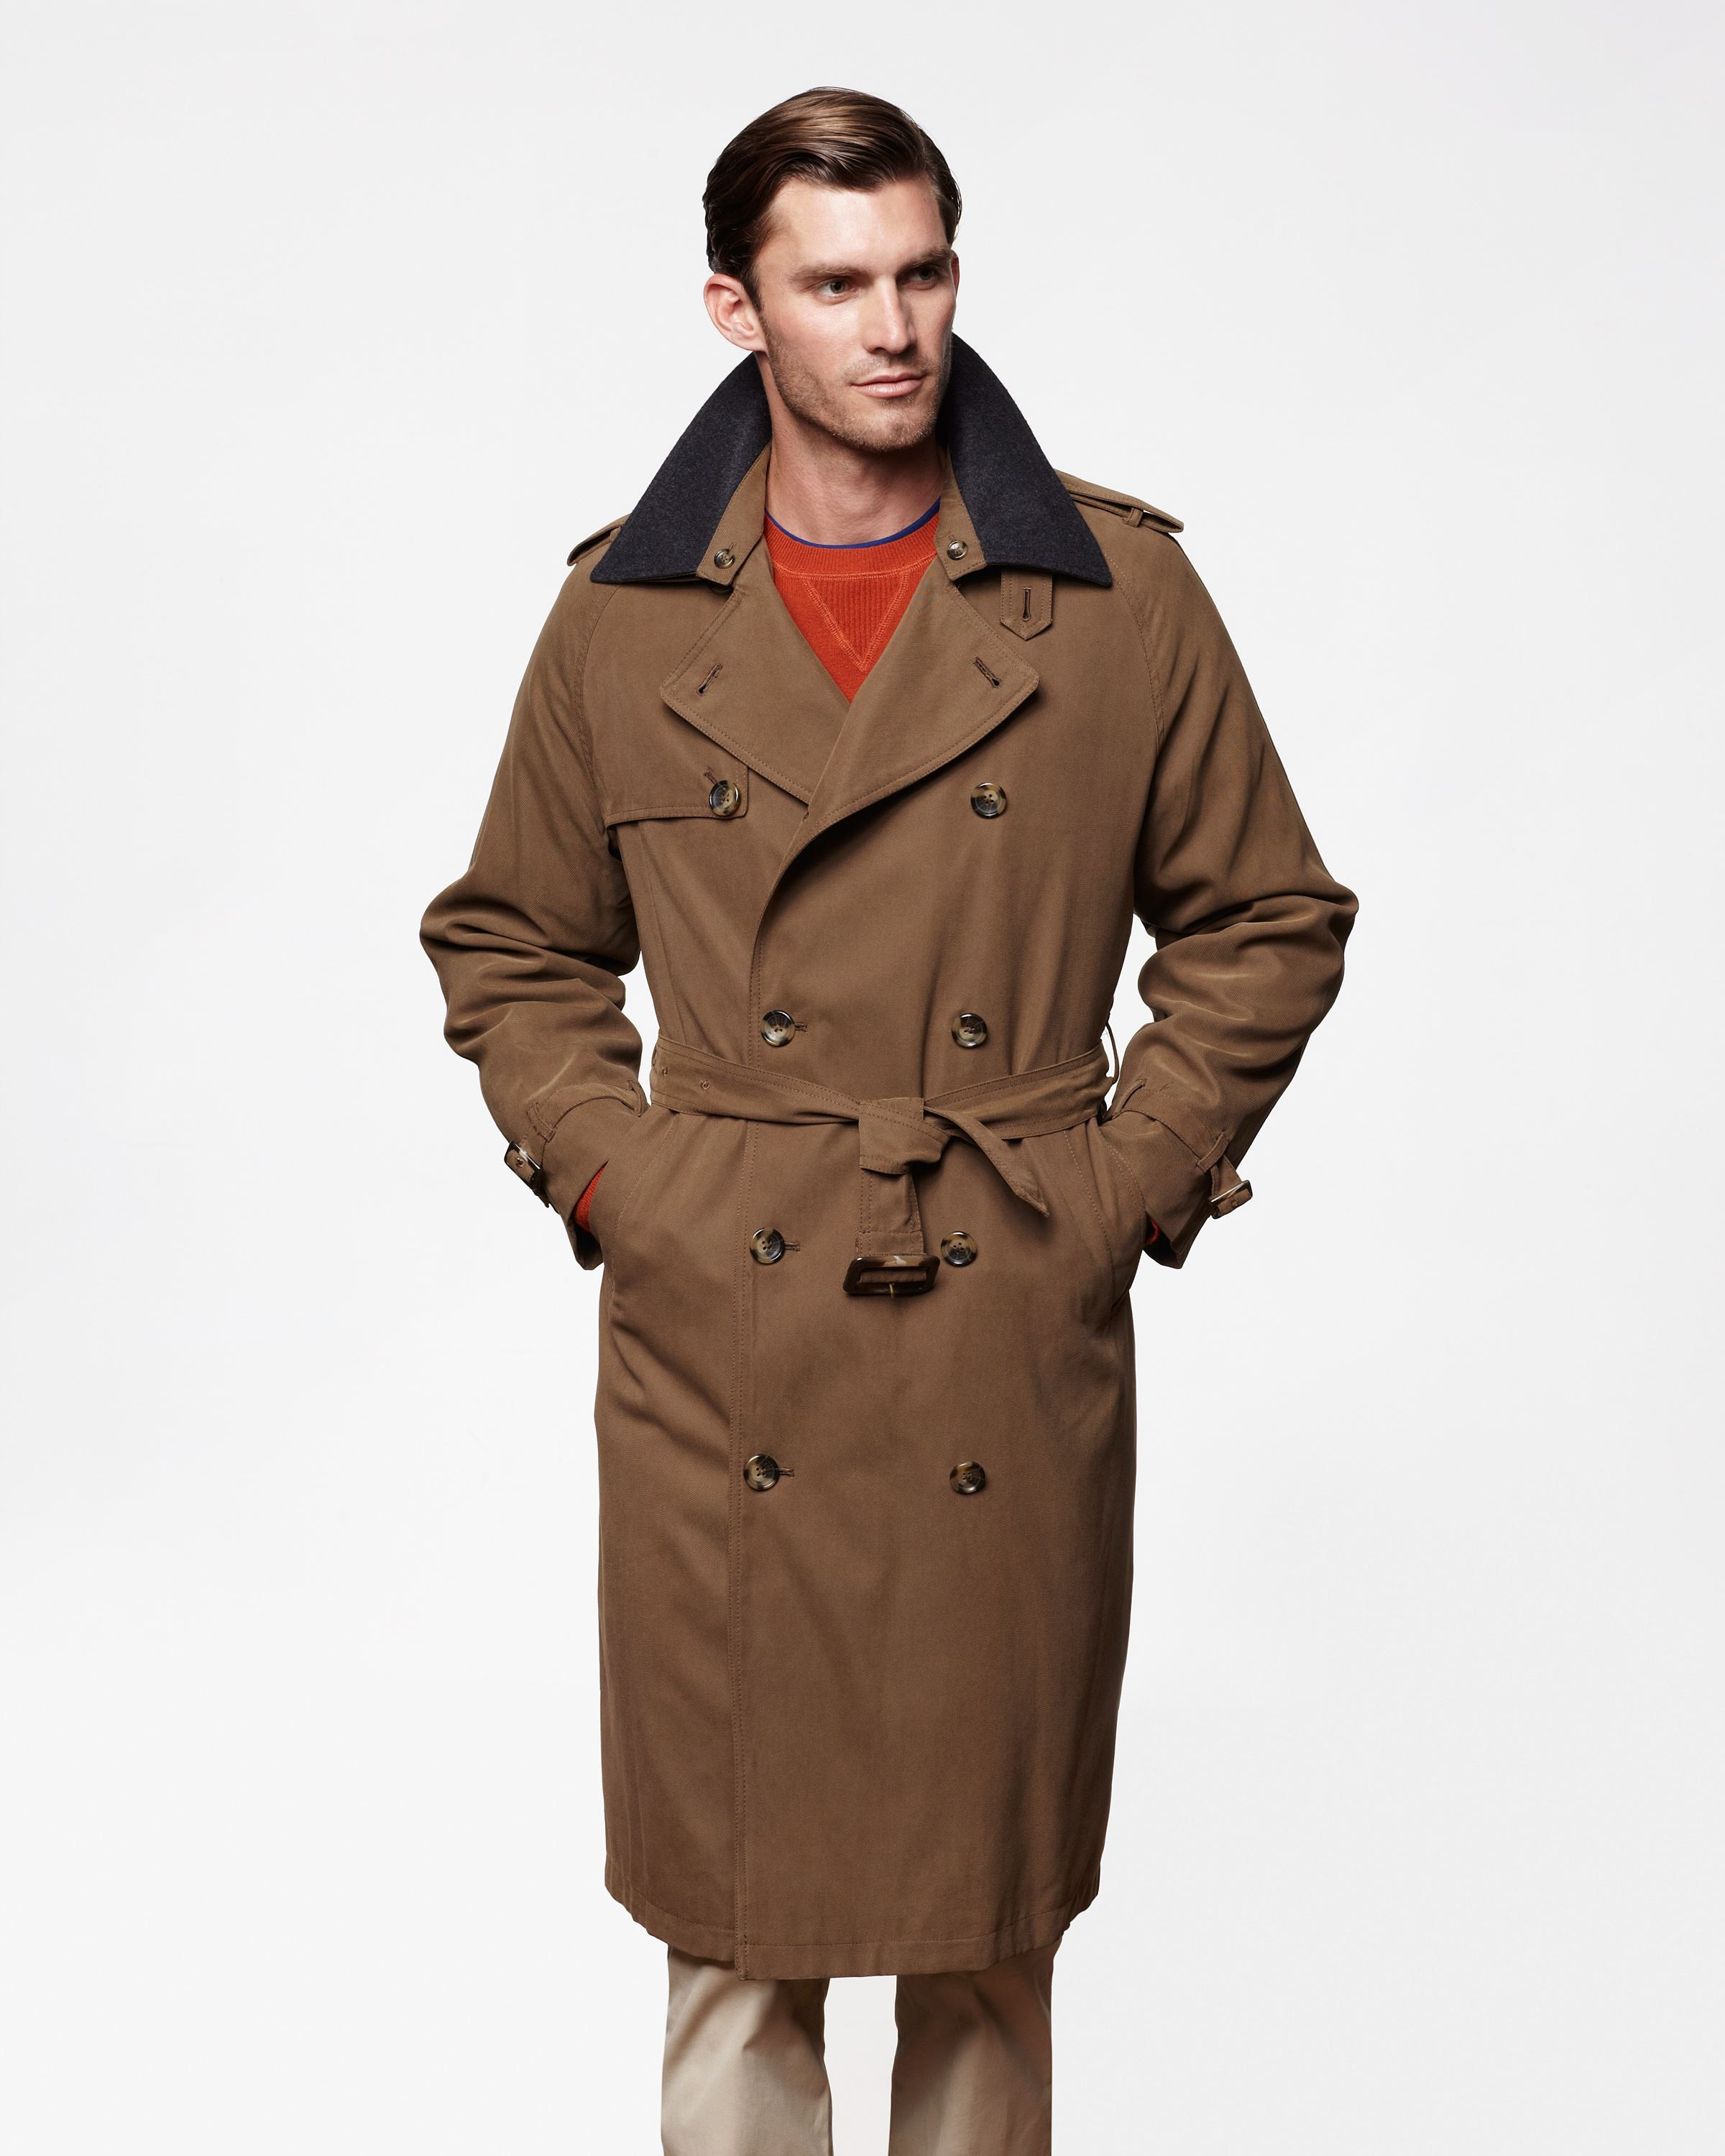 ea56a0f431c Trench Coat for Men Outfit Ideas – careyfashion.com